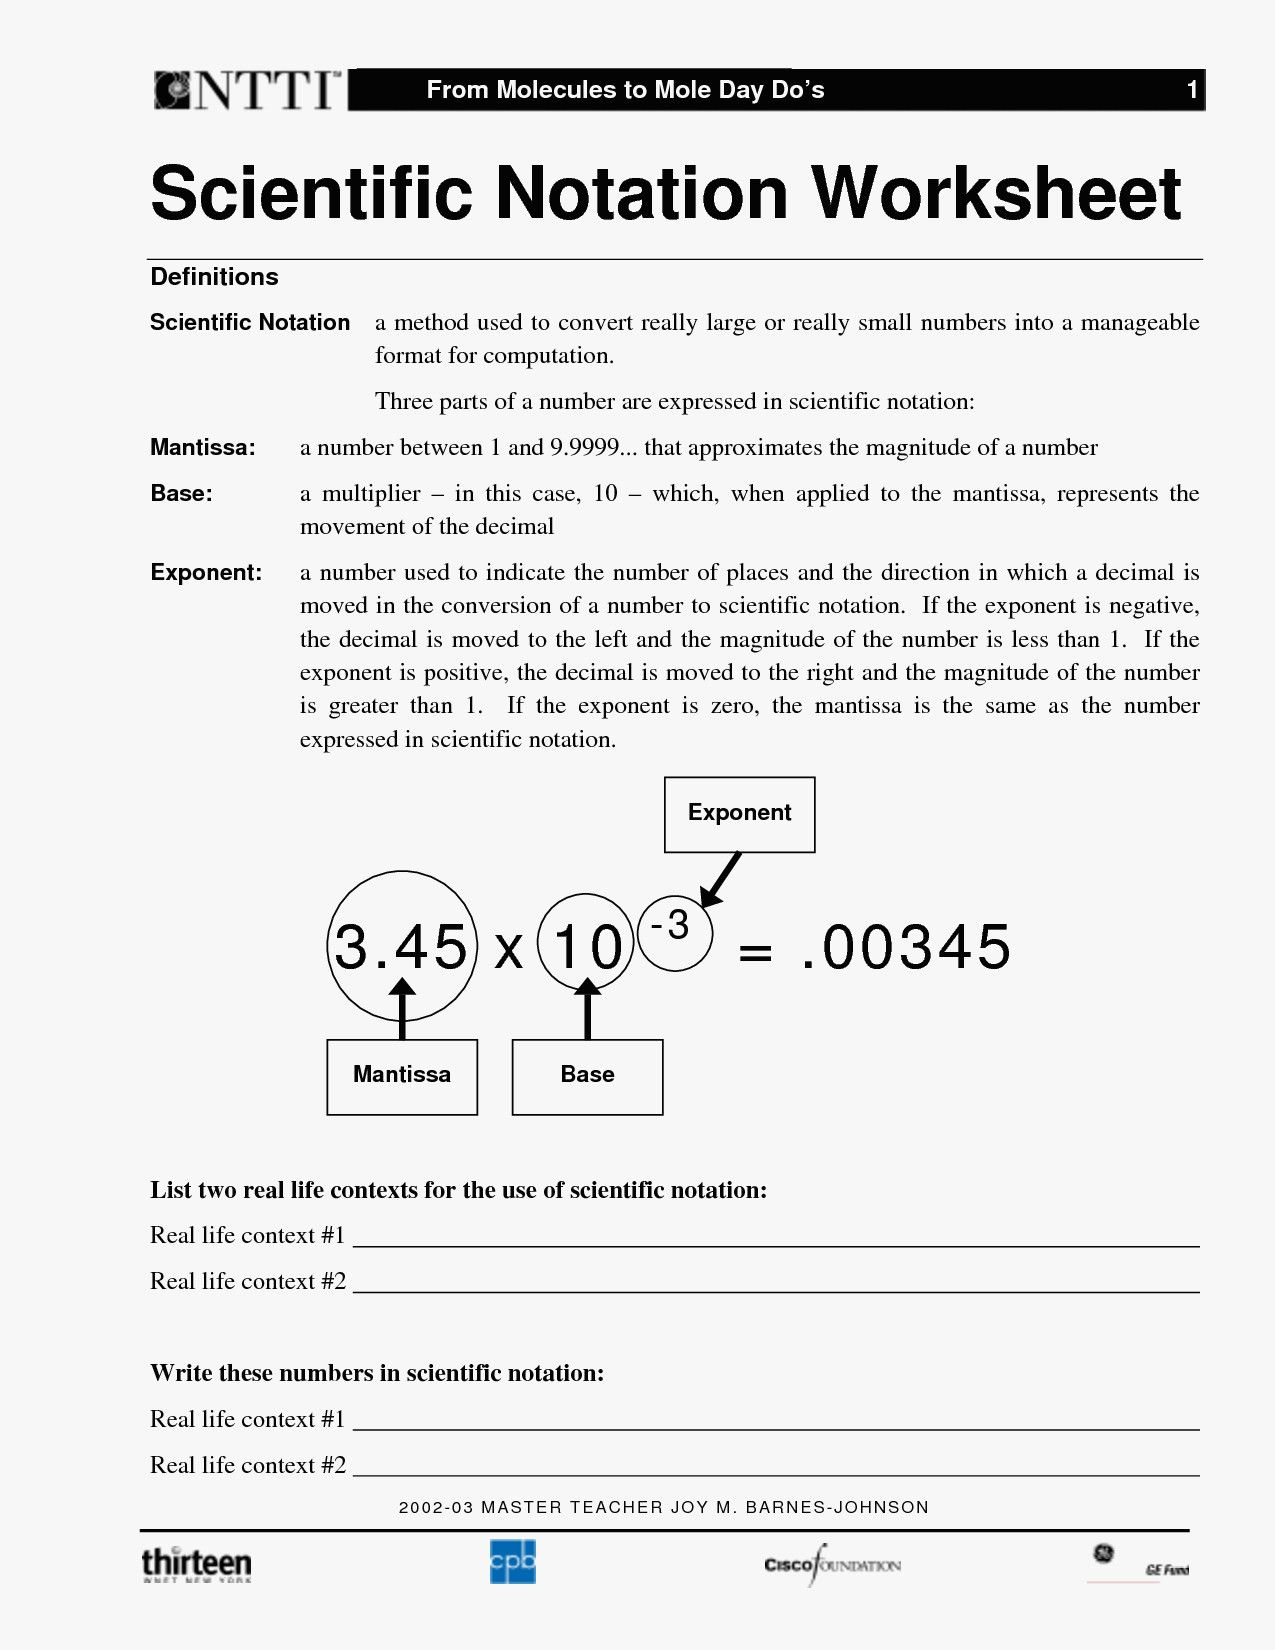 42 Clever Scientific Notation Worksheet Ideas